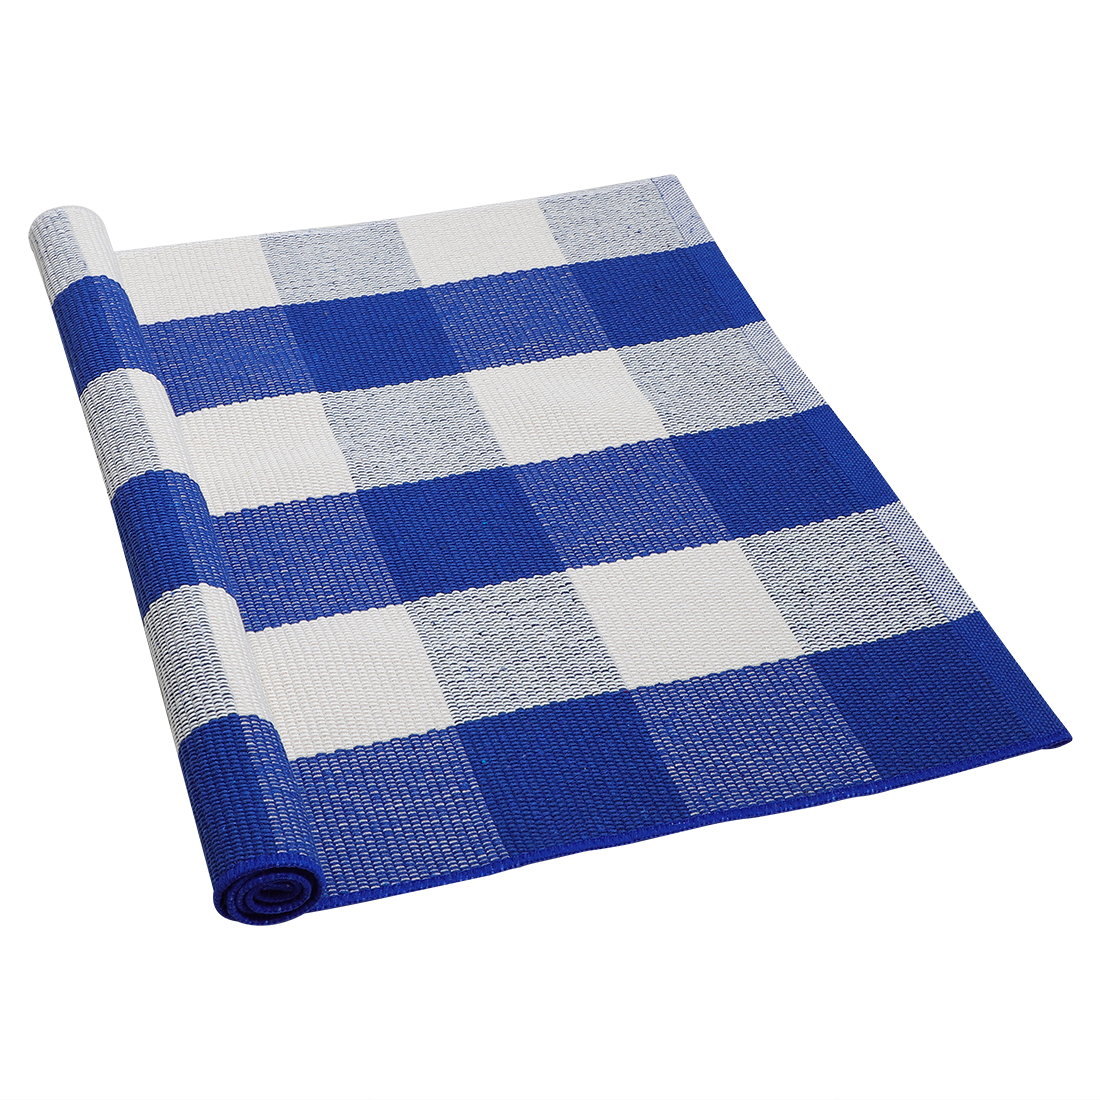 Cotton Checkered Plaid Floor Area Rug Runner Carpets Indoor Outdoor Blue White